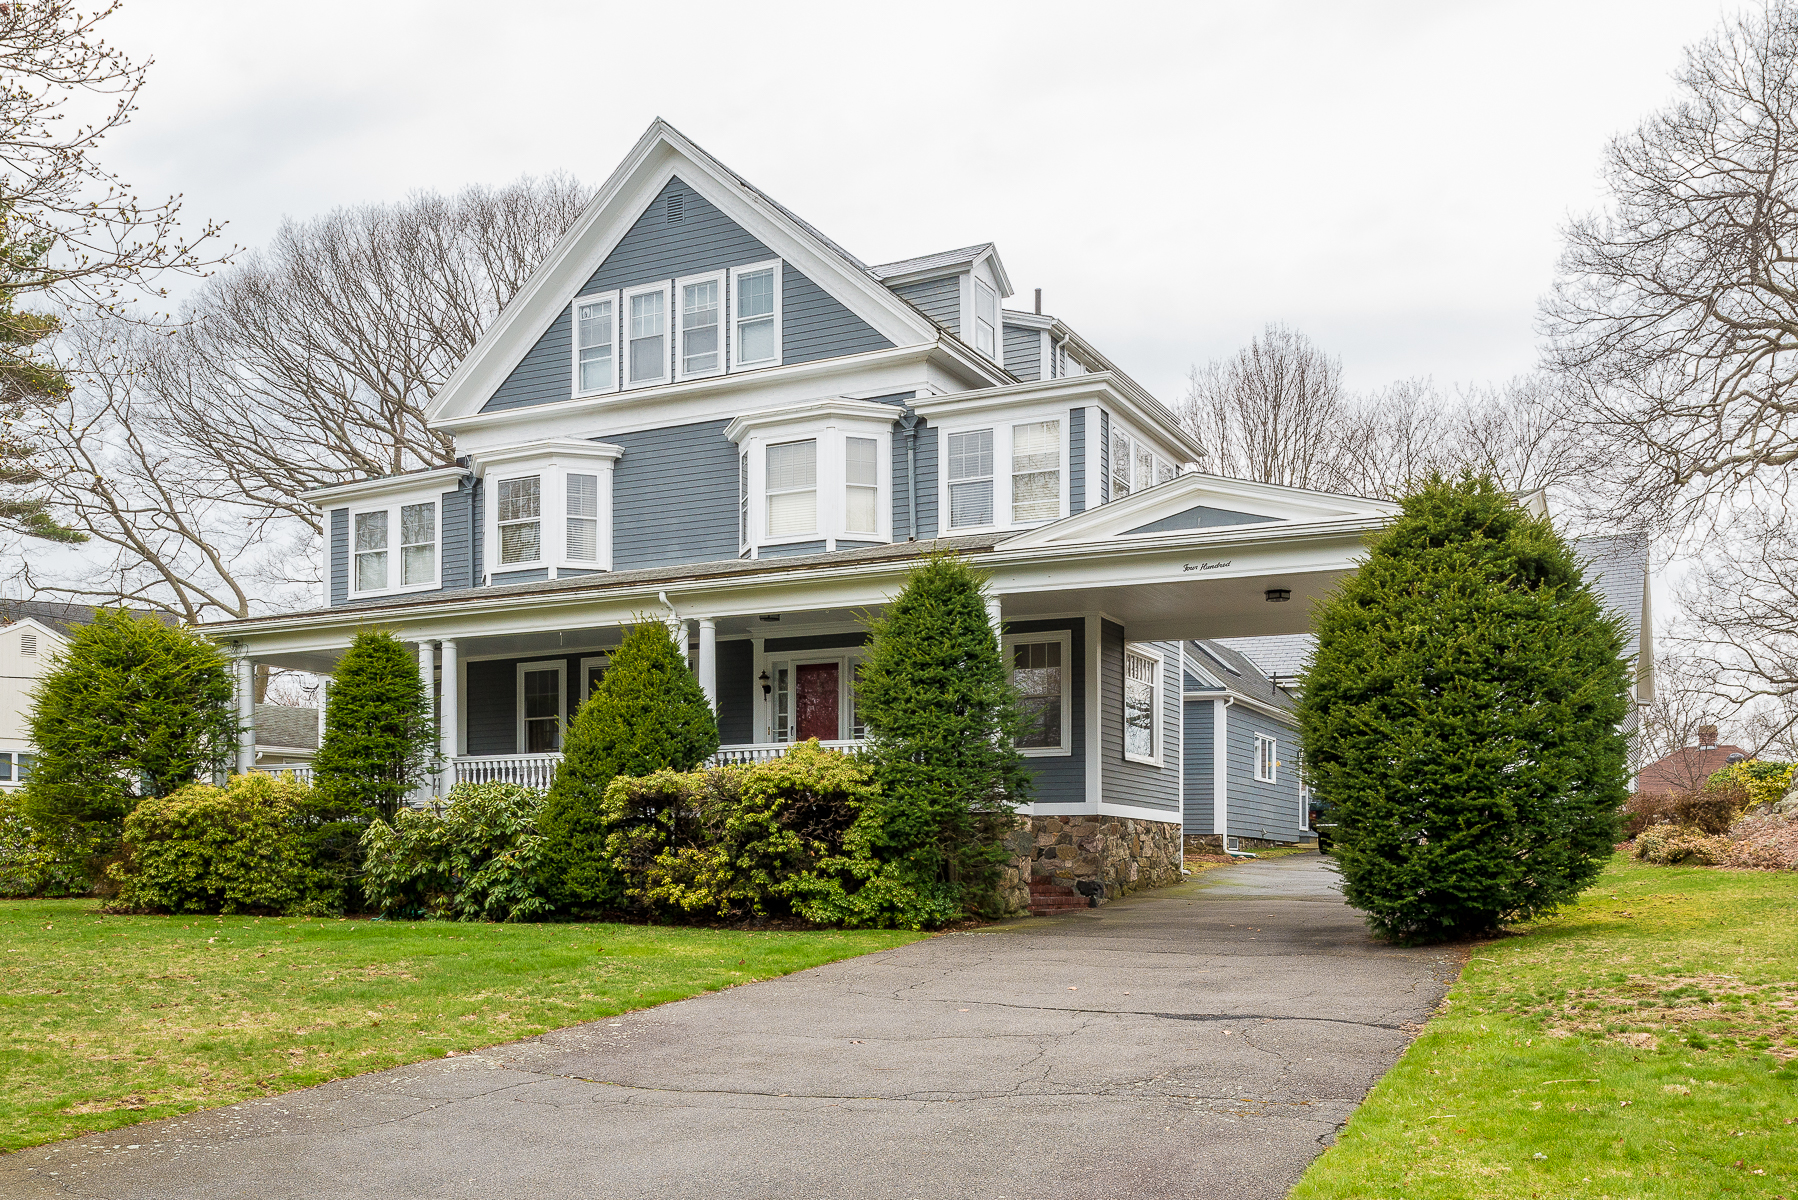 Single Family Home for Sale at Updated Classic Victorian 400 Puritan Road Swampscott, Massachusetts 01907 United States